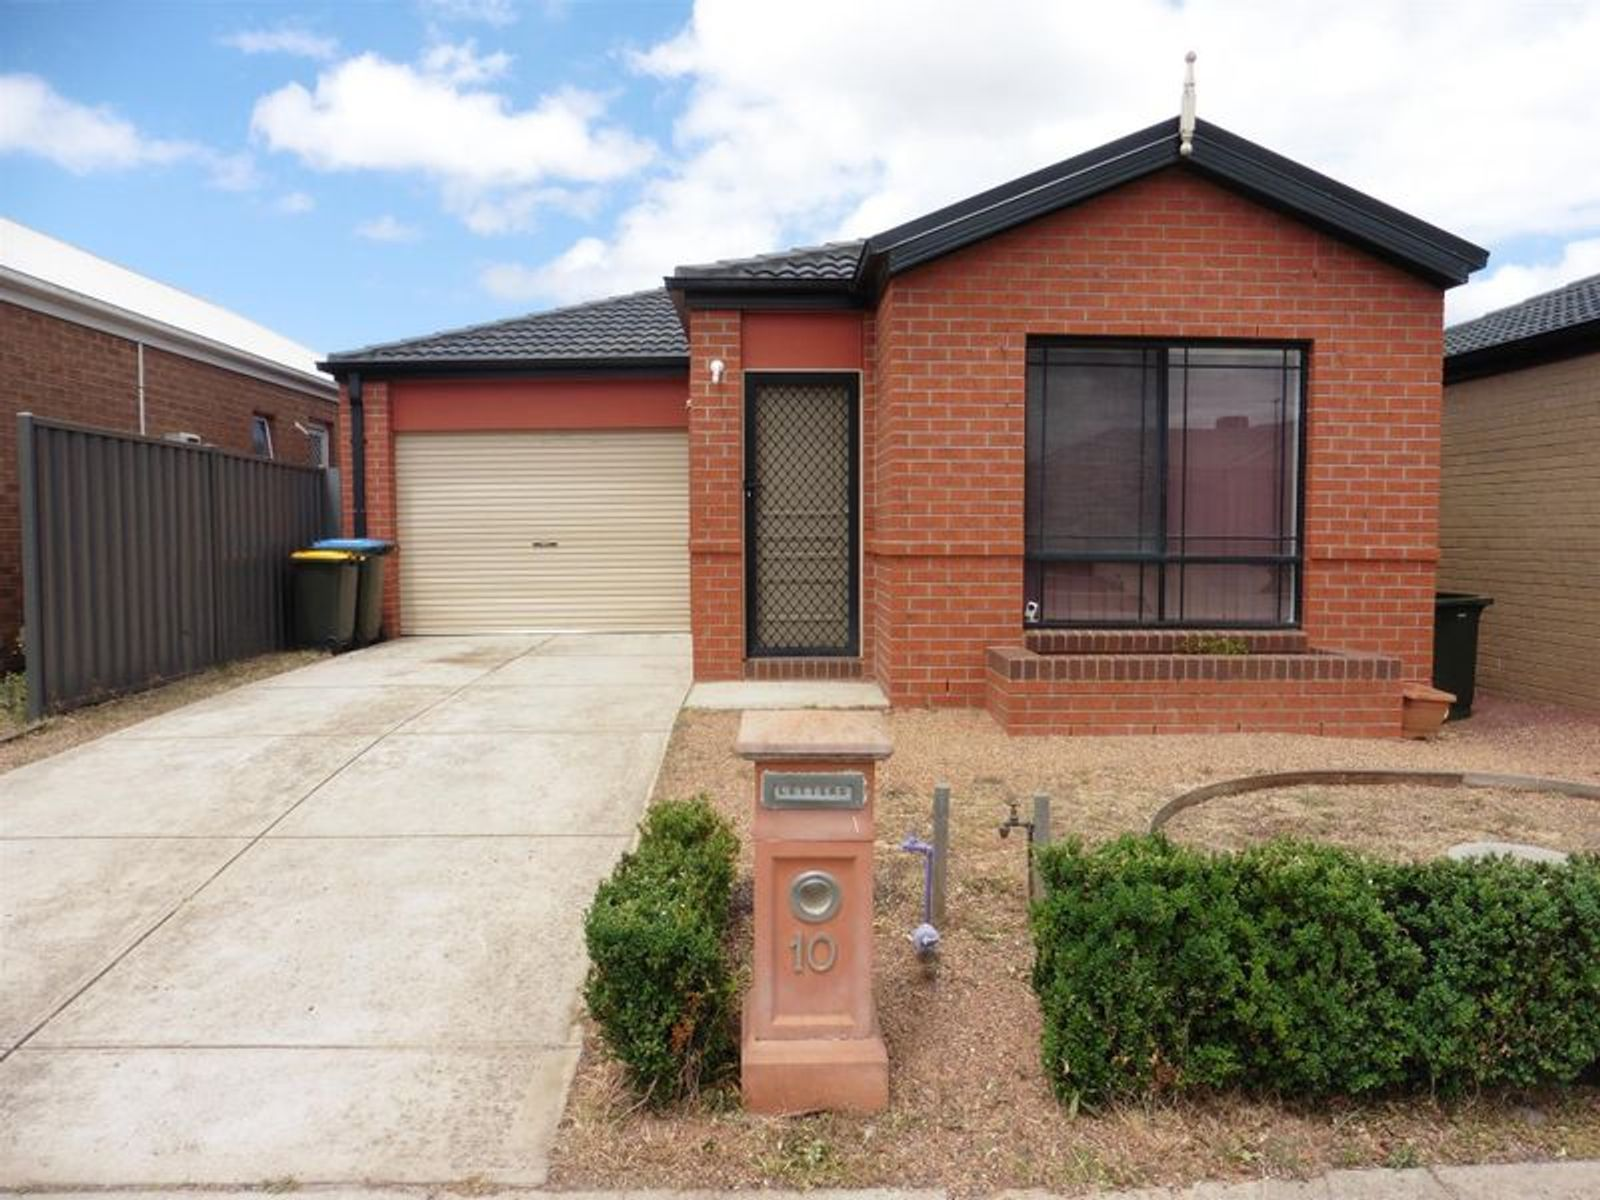 10 Cogley Street, Manor Lakes, VIC 3024